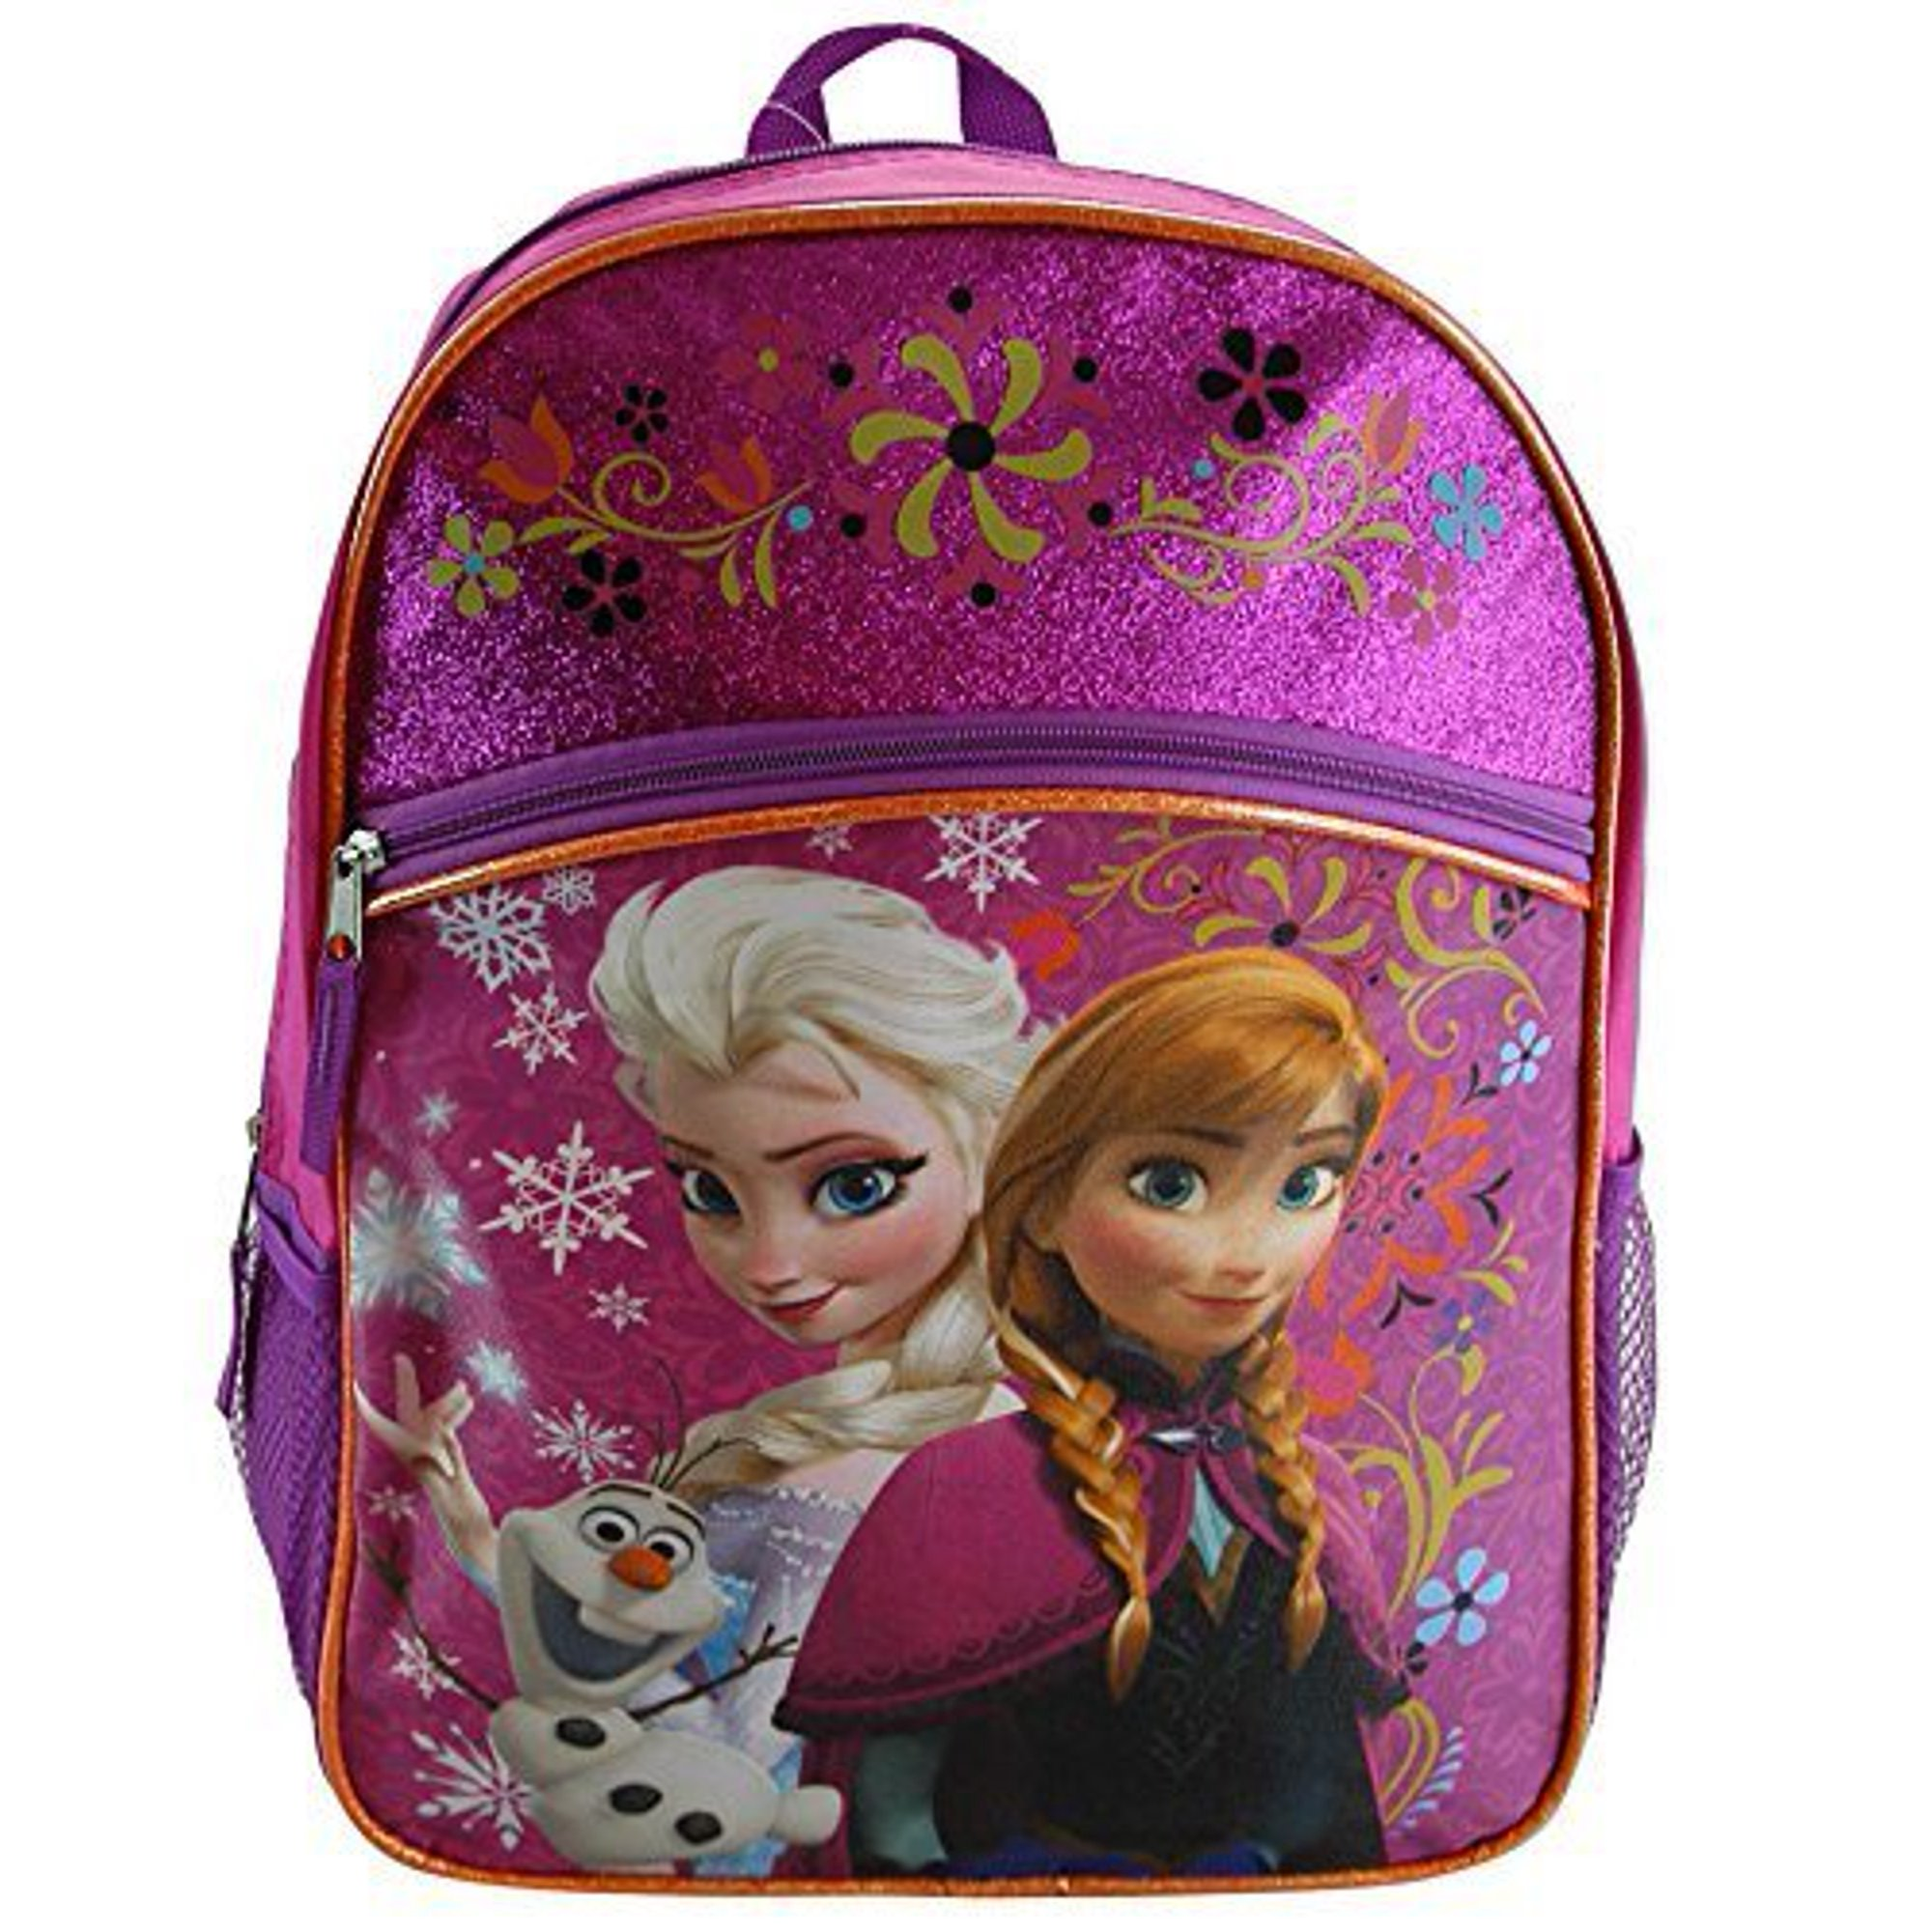 231de98062c Disney Frozen Princess Elsa Anna Backpack